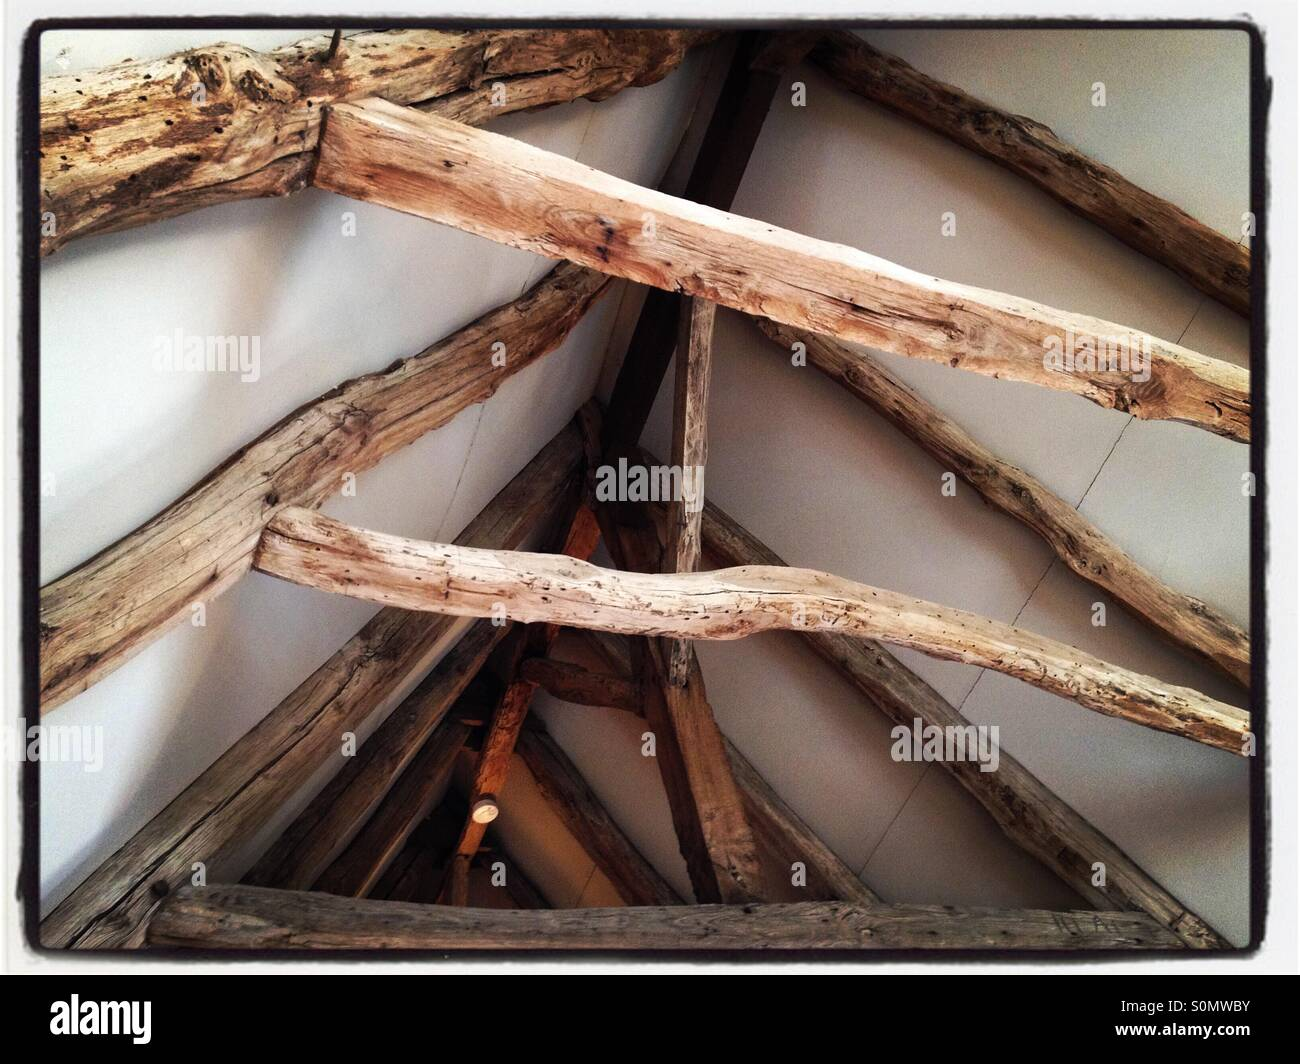 Old wooden roof timbers exposed after a house restoration - Stock Image